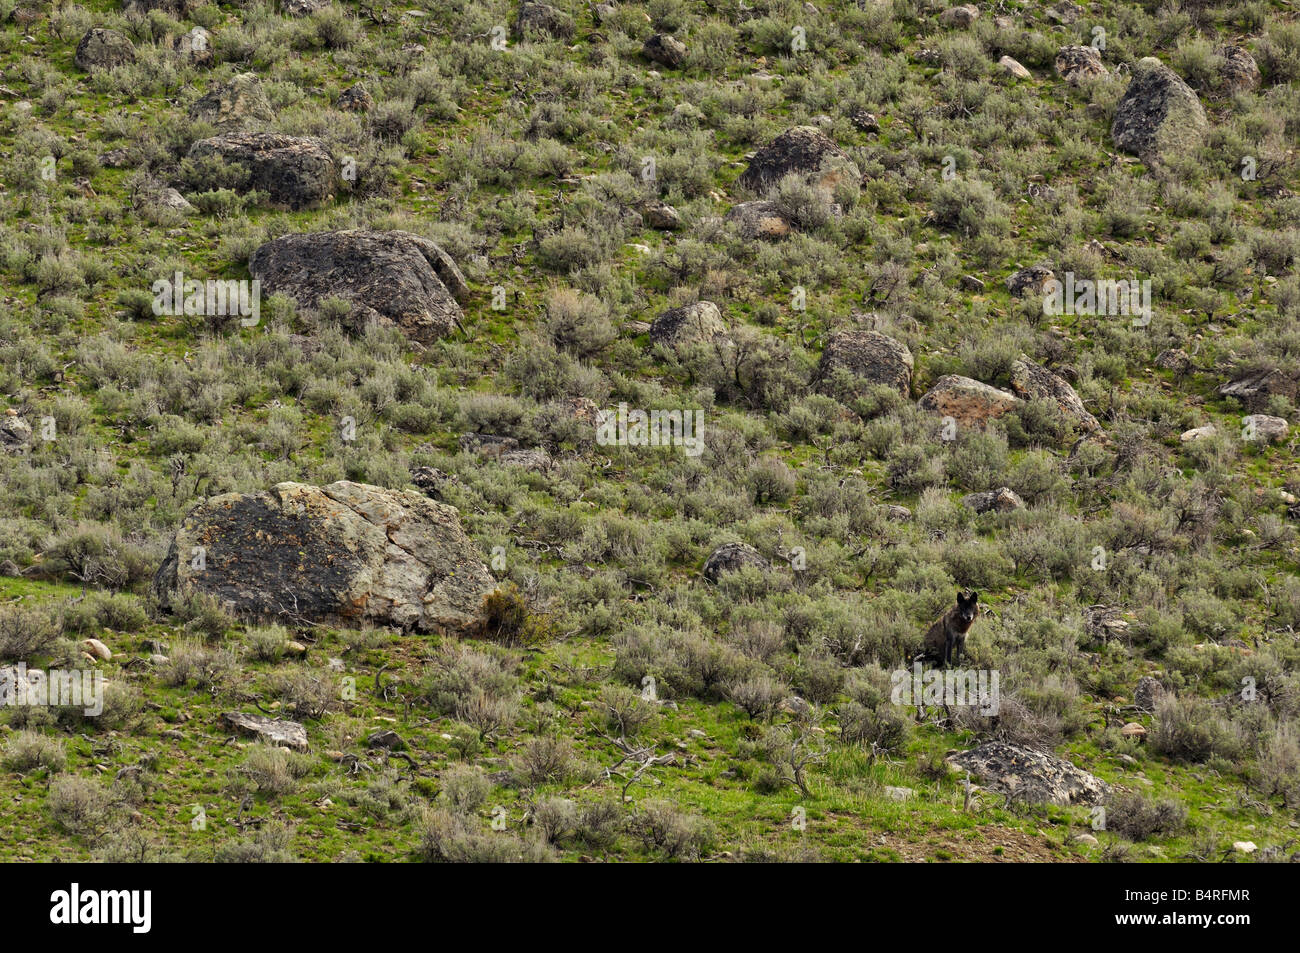 Black Wolf Blends into the Landscape - Stock Image